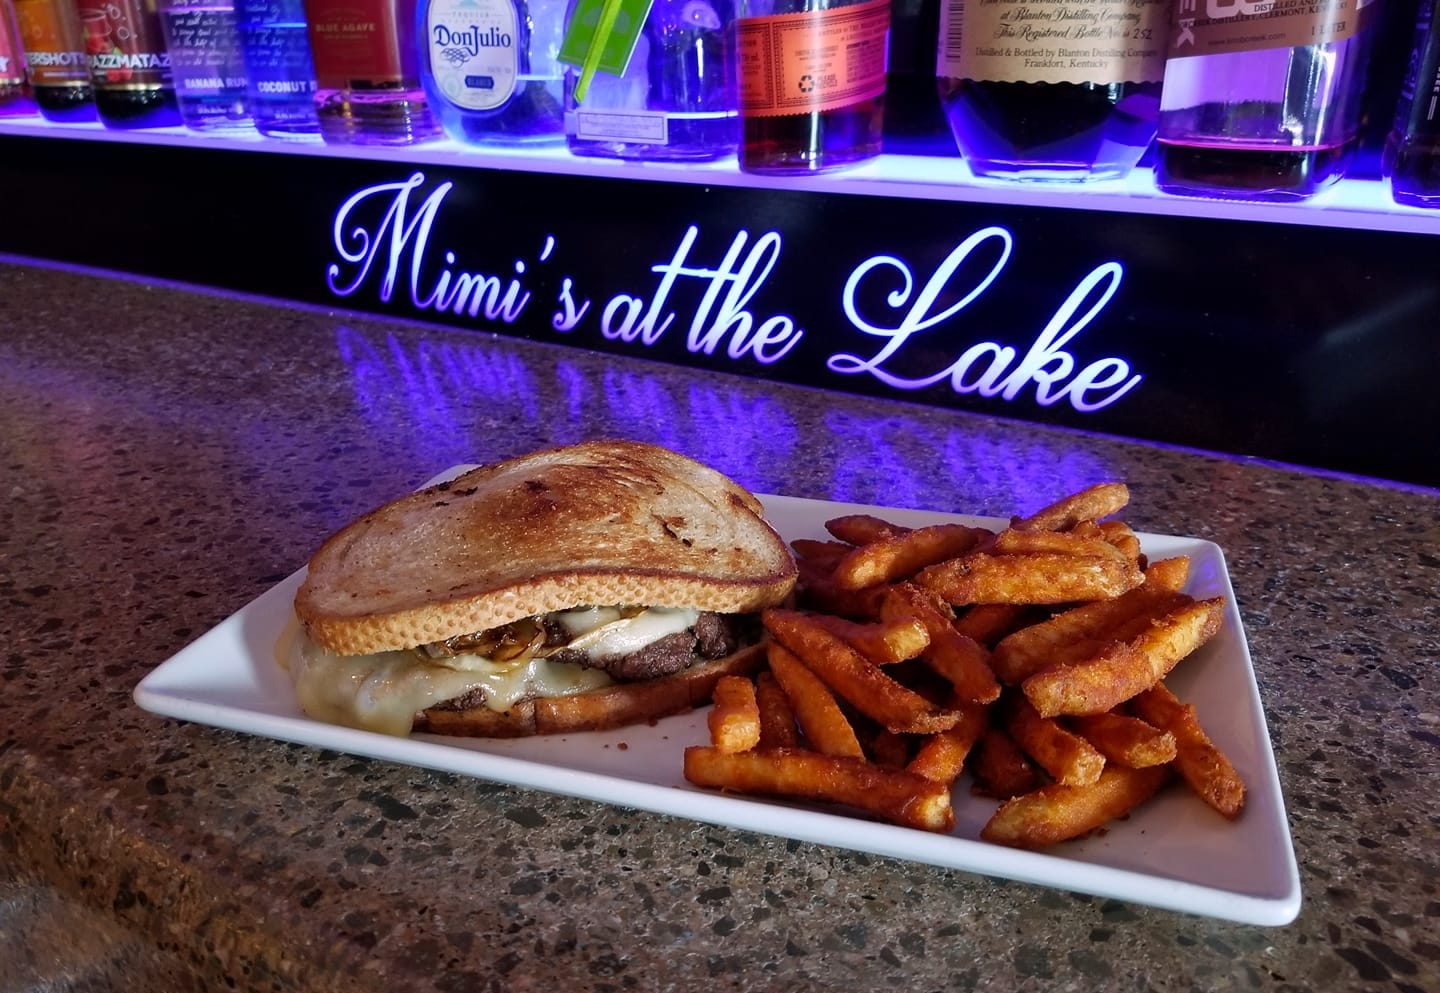 sandwhich & fries in front of lit Mimi's at the Lake sign